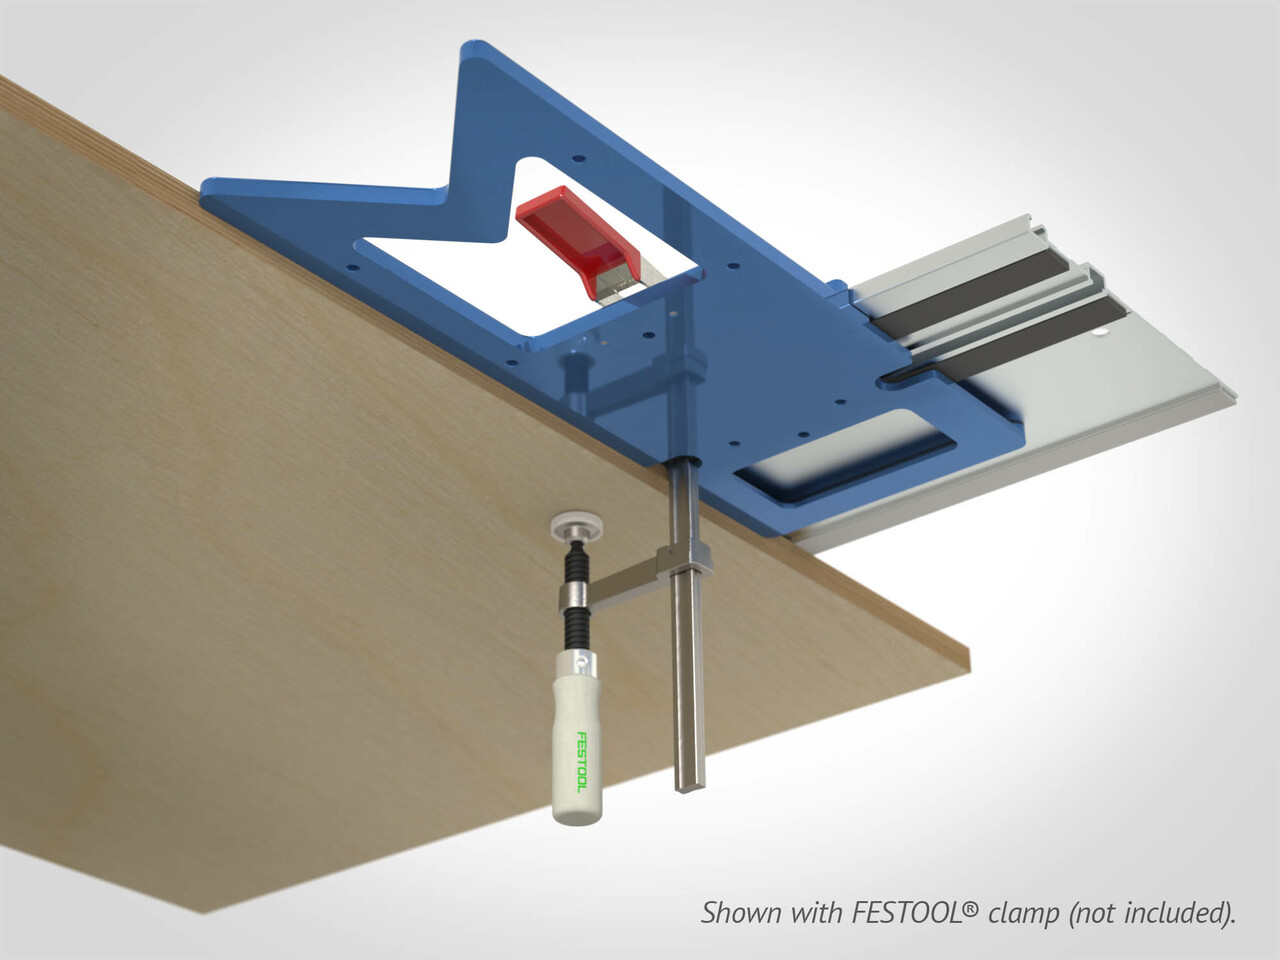 Clamping slots on both reference edges of the GRS-16 PE accommodate T-track clamps such as Festool's Screw Clamps and Quick Clamps.